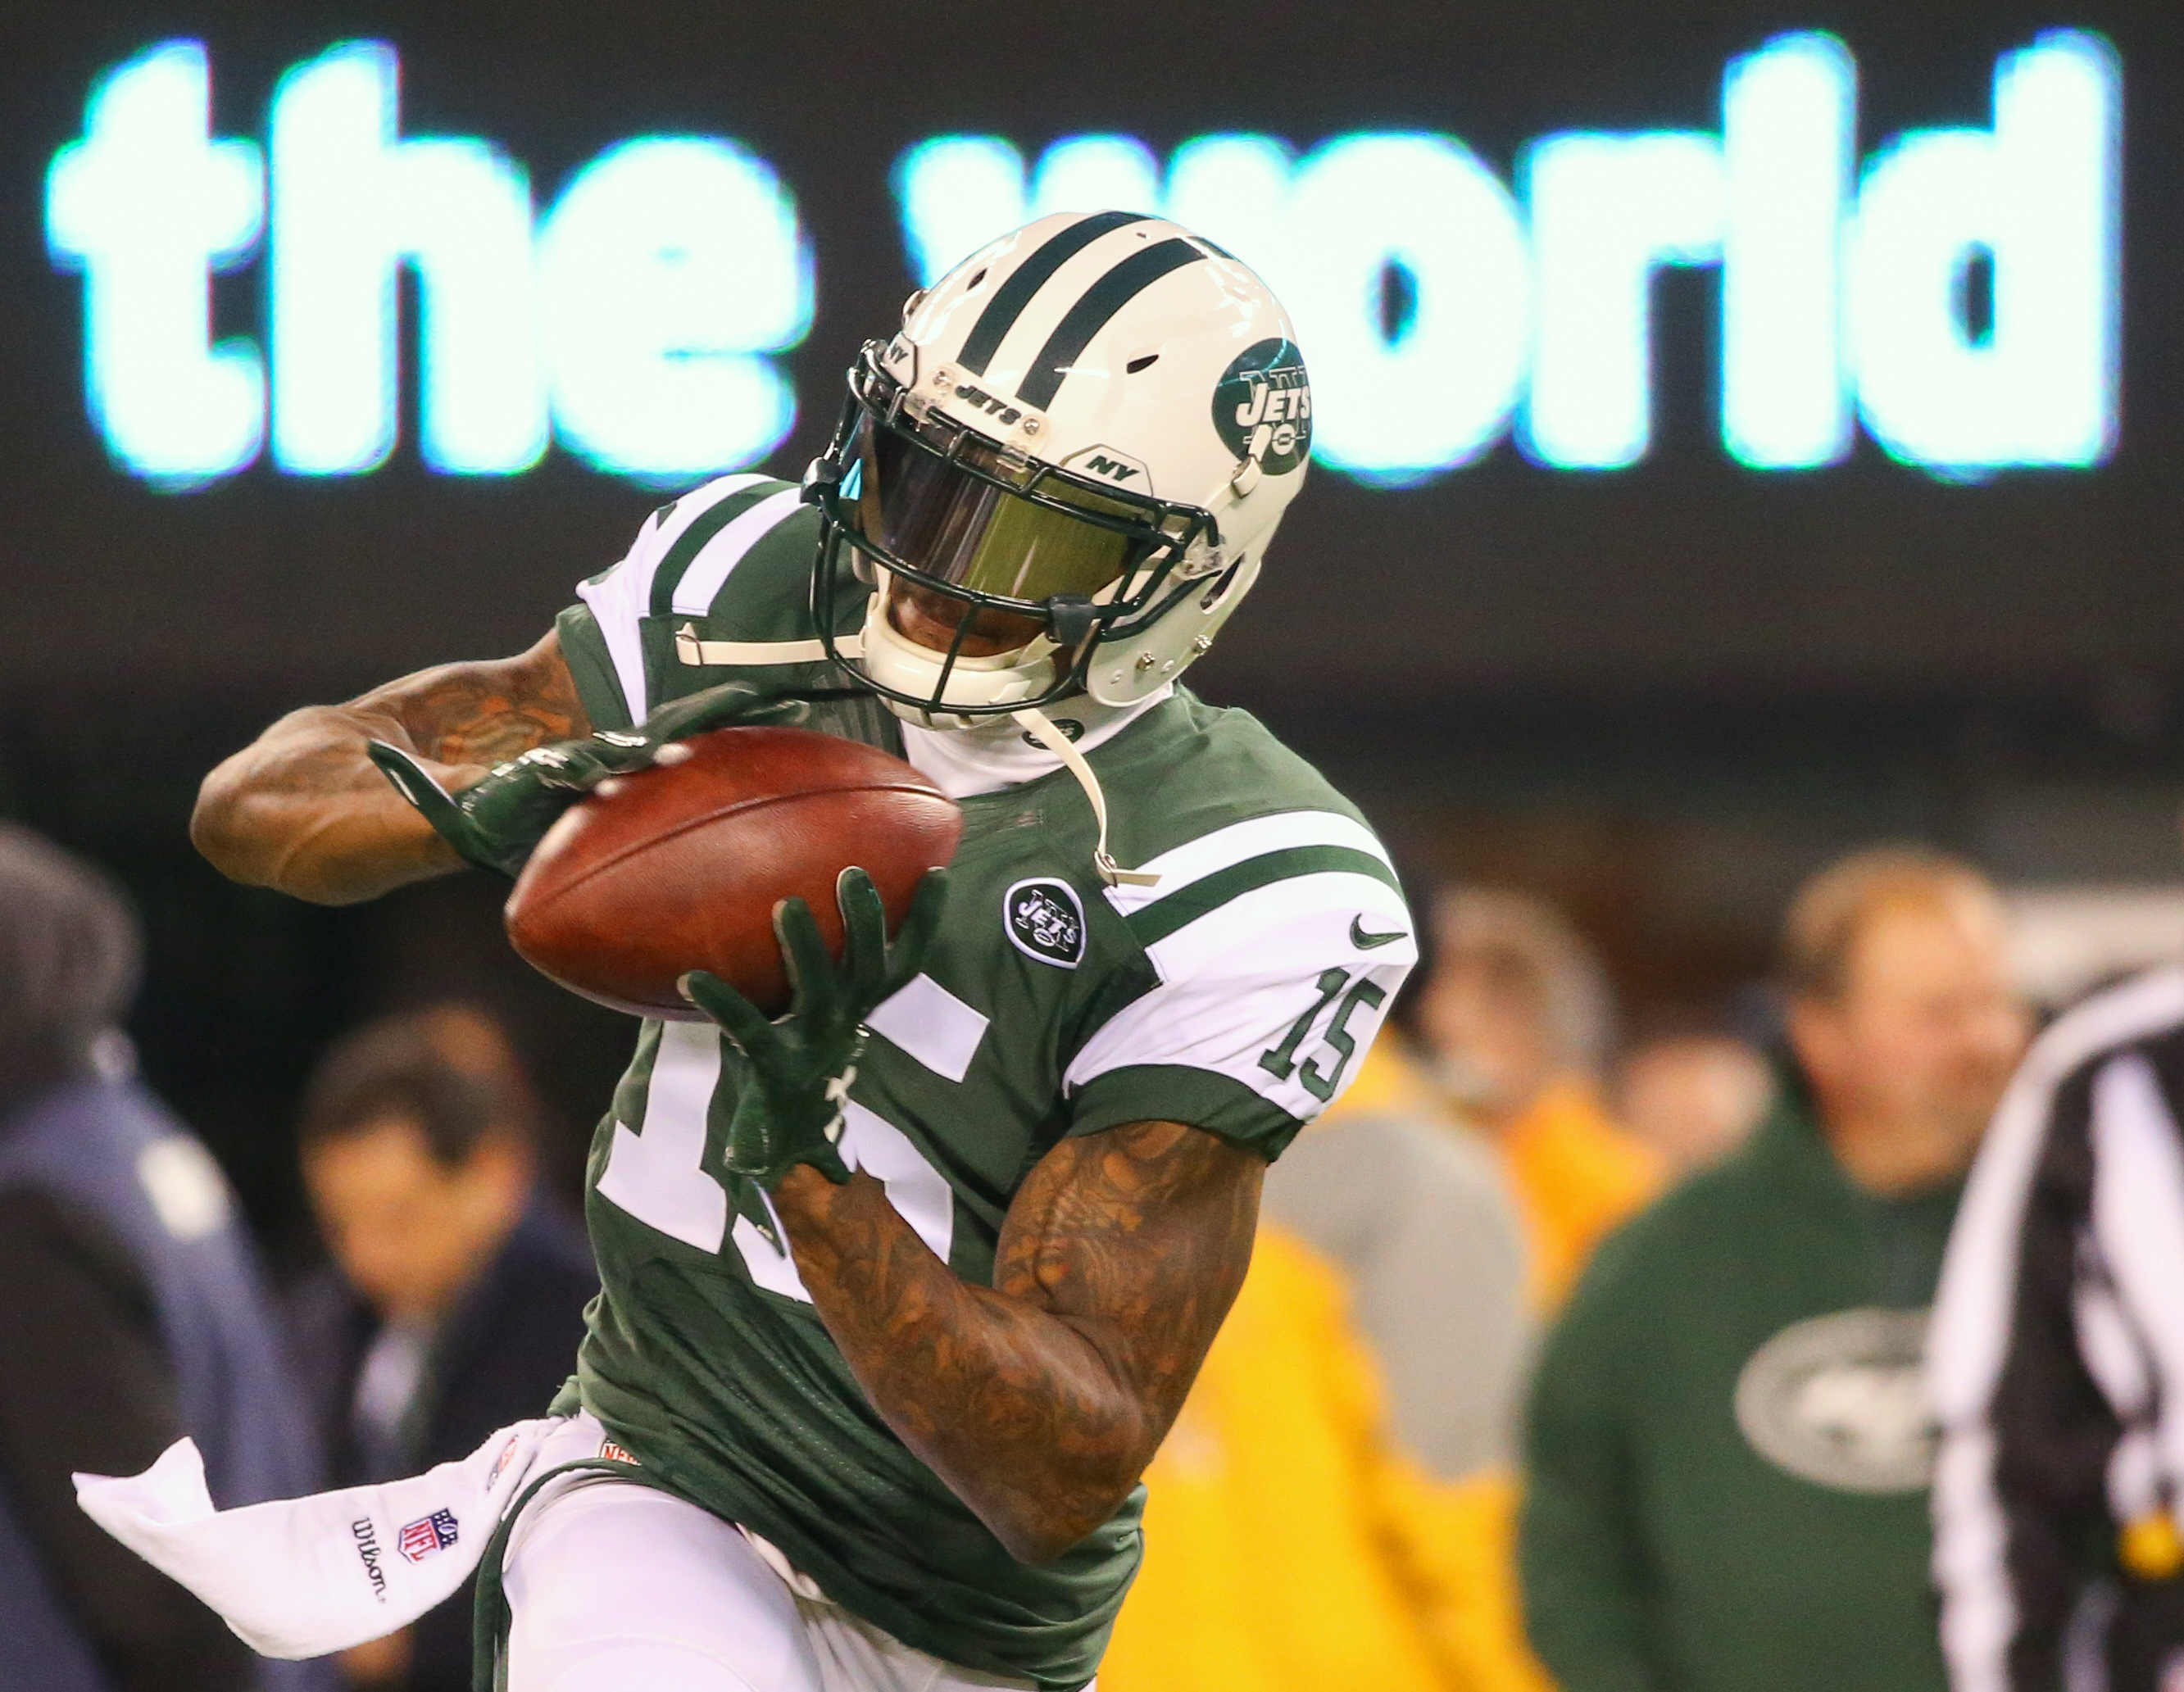 9727567-nfl-indianapolis-colts-at-new-york-jets